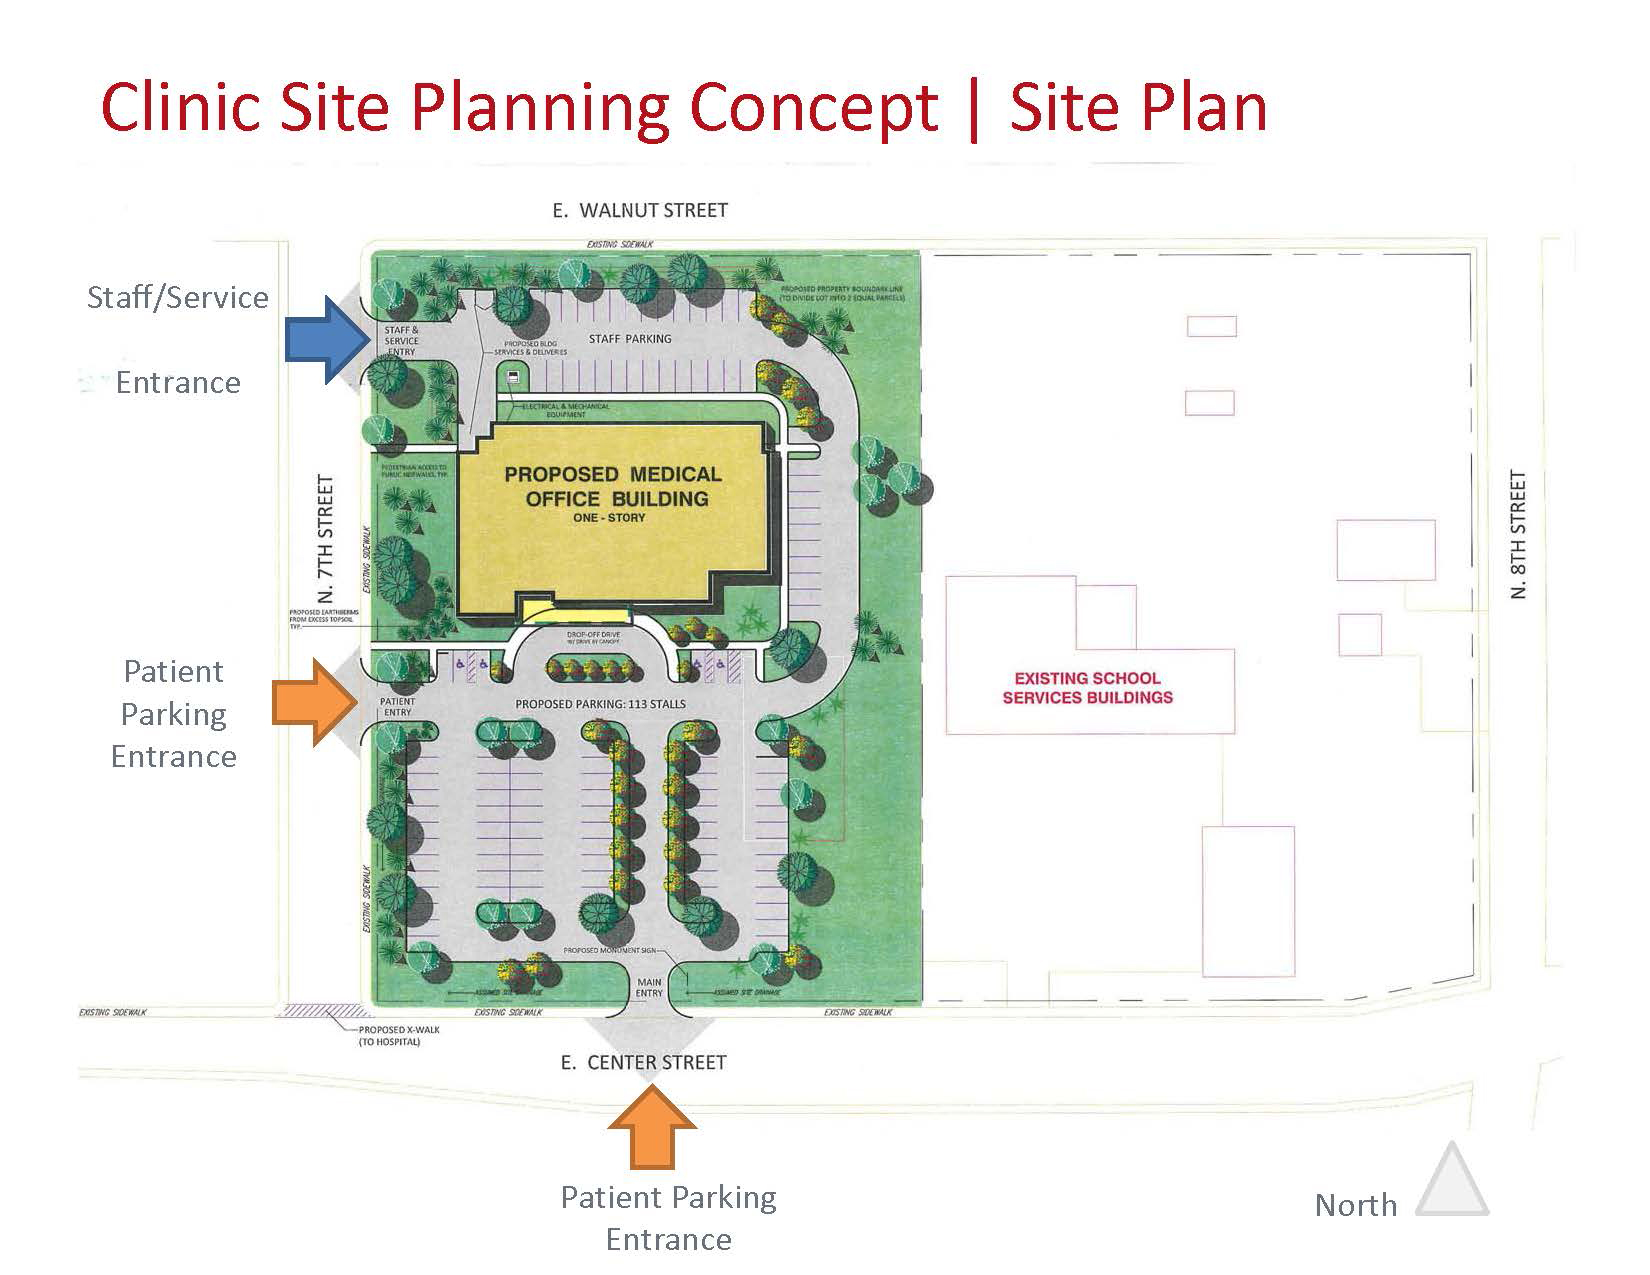 Memorial hospital selects building site memorial for New building design plan